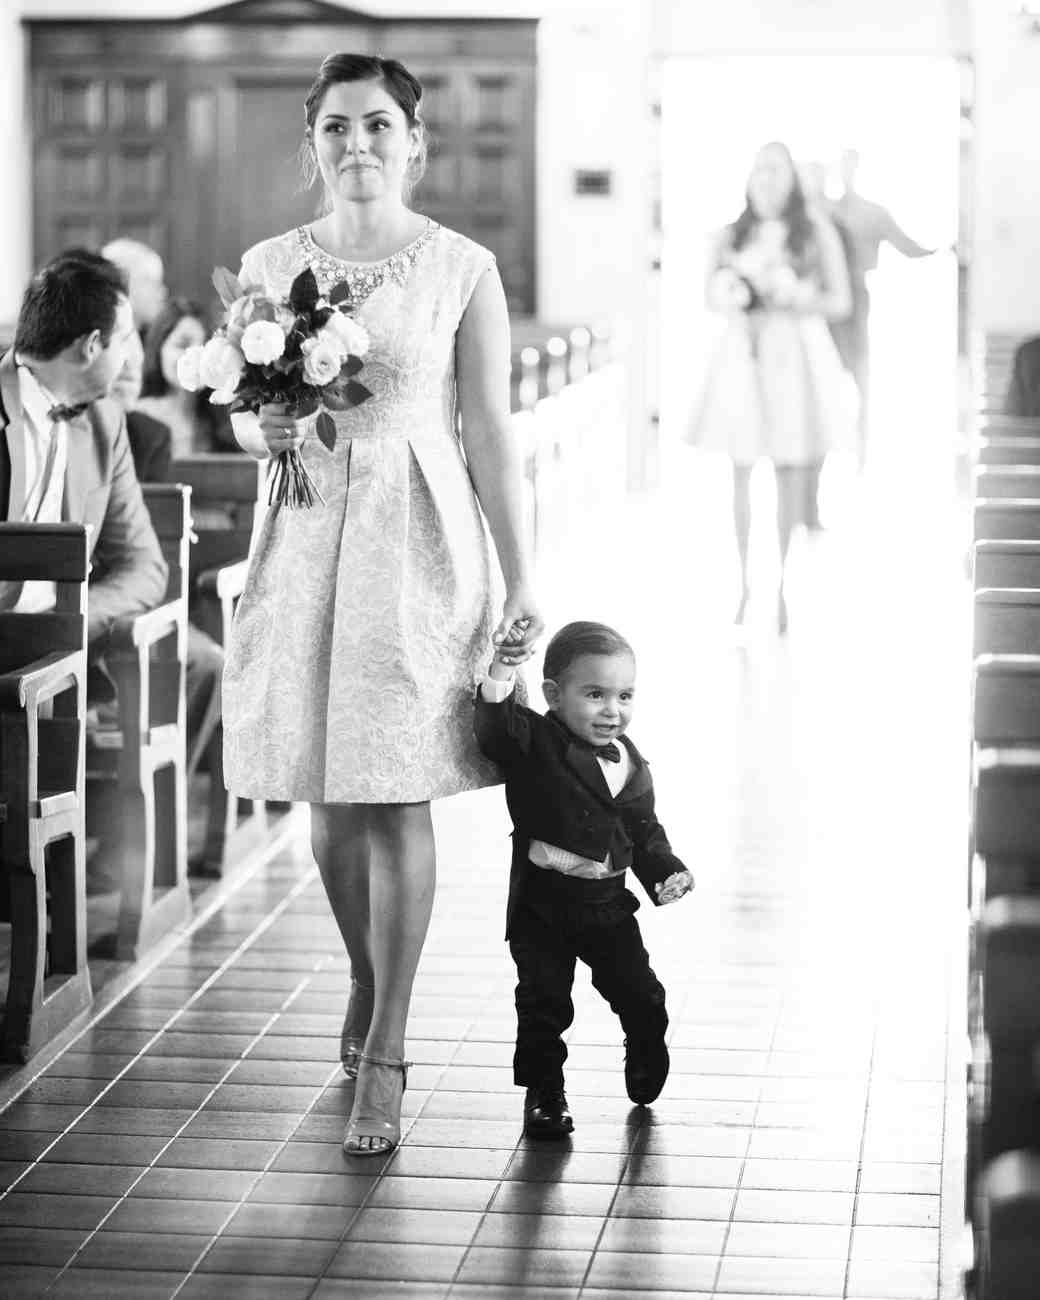 richelle-tom-wedding-ringbearer-180bw-s112855-0416.jpg